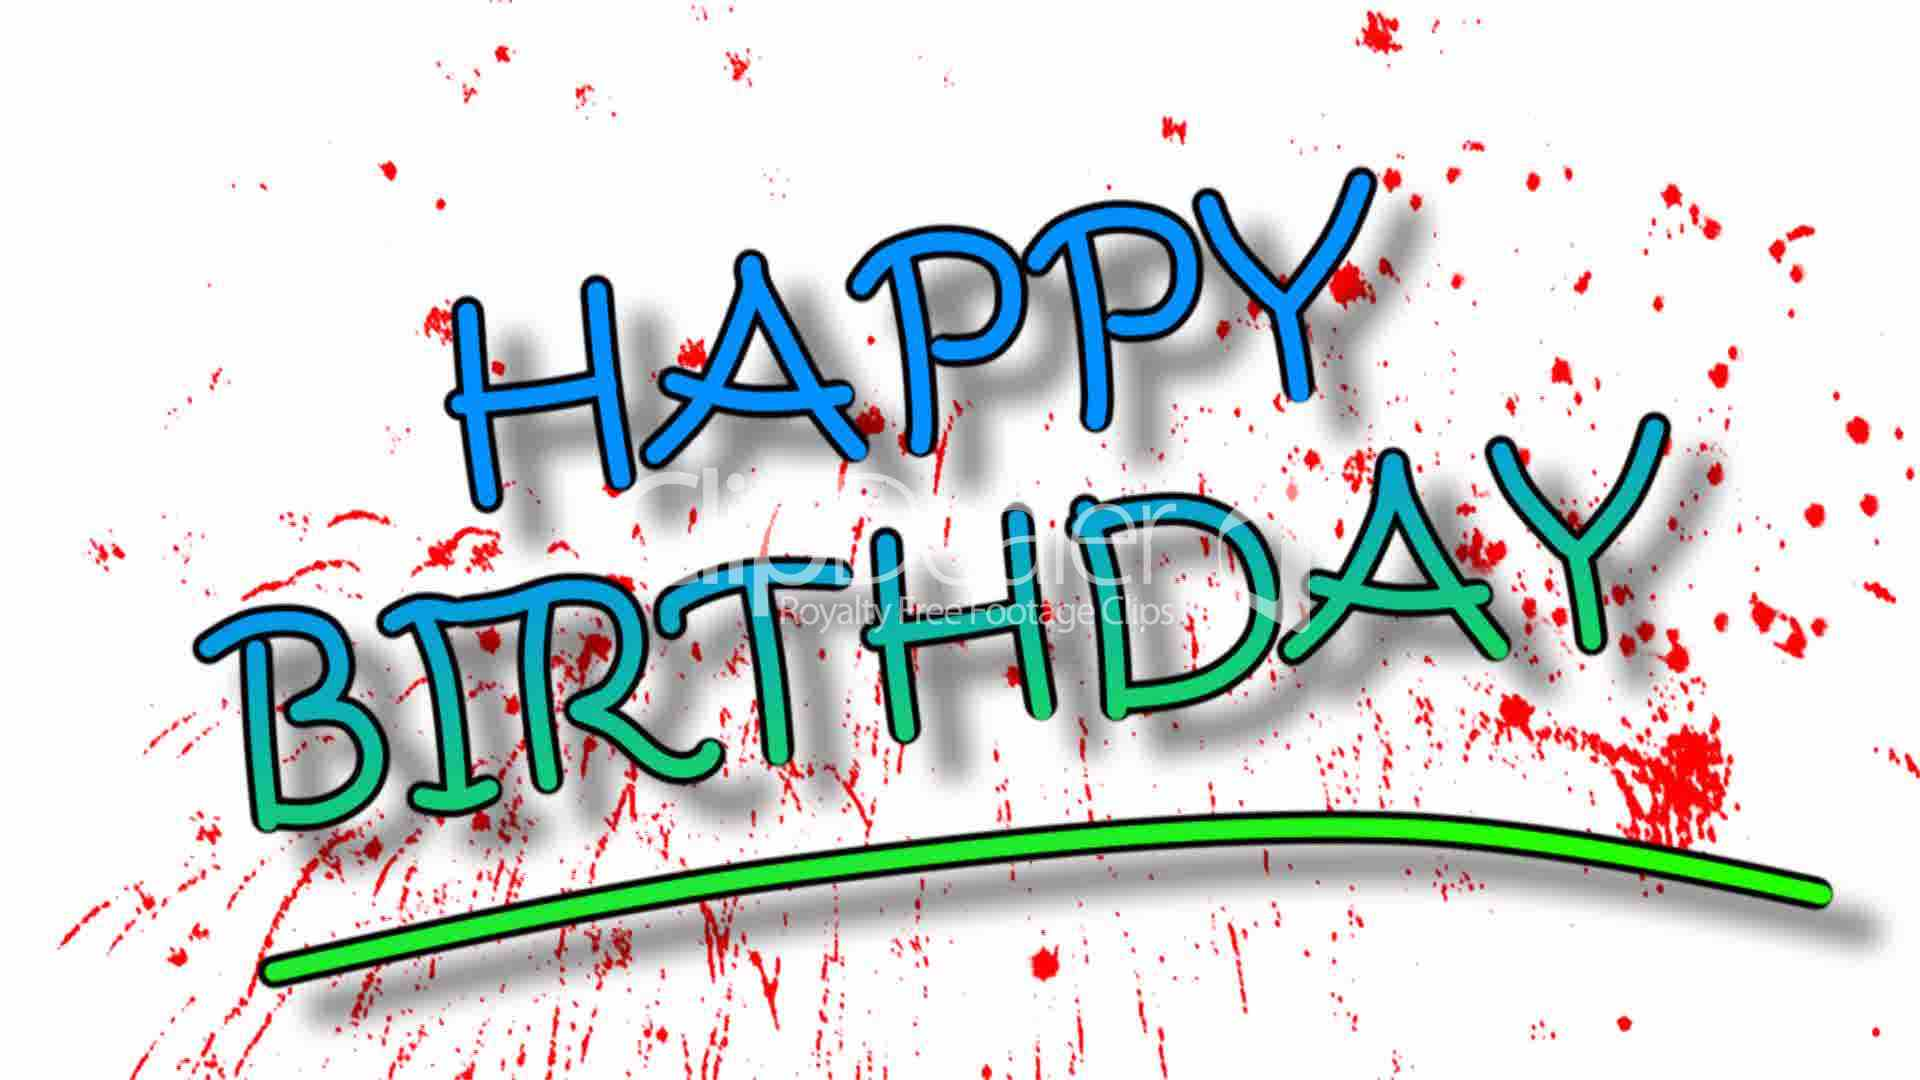 Happy Birthday: Royalty-free video and stock footage